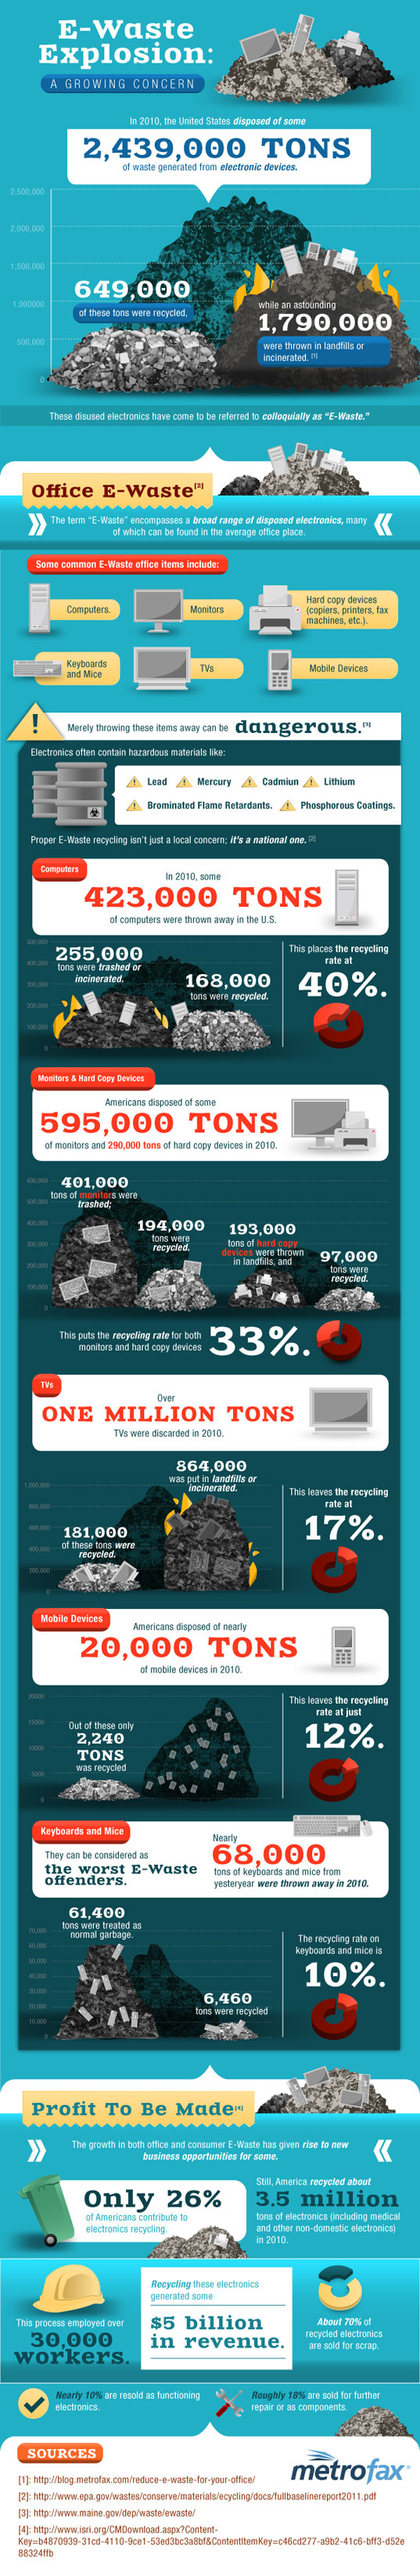 e-waste, e-waste infographic, sustainable design, green design, infographic, sustainable technology, green gadget, electronics recycling, electronic waste, e-waste recycling